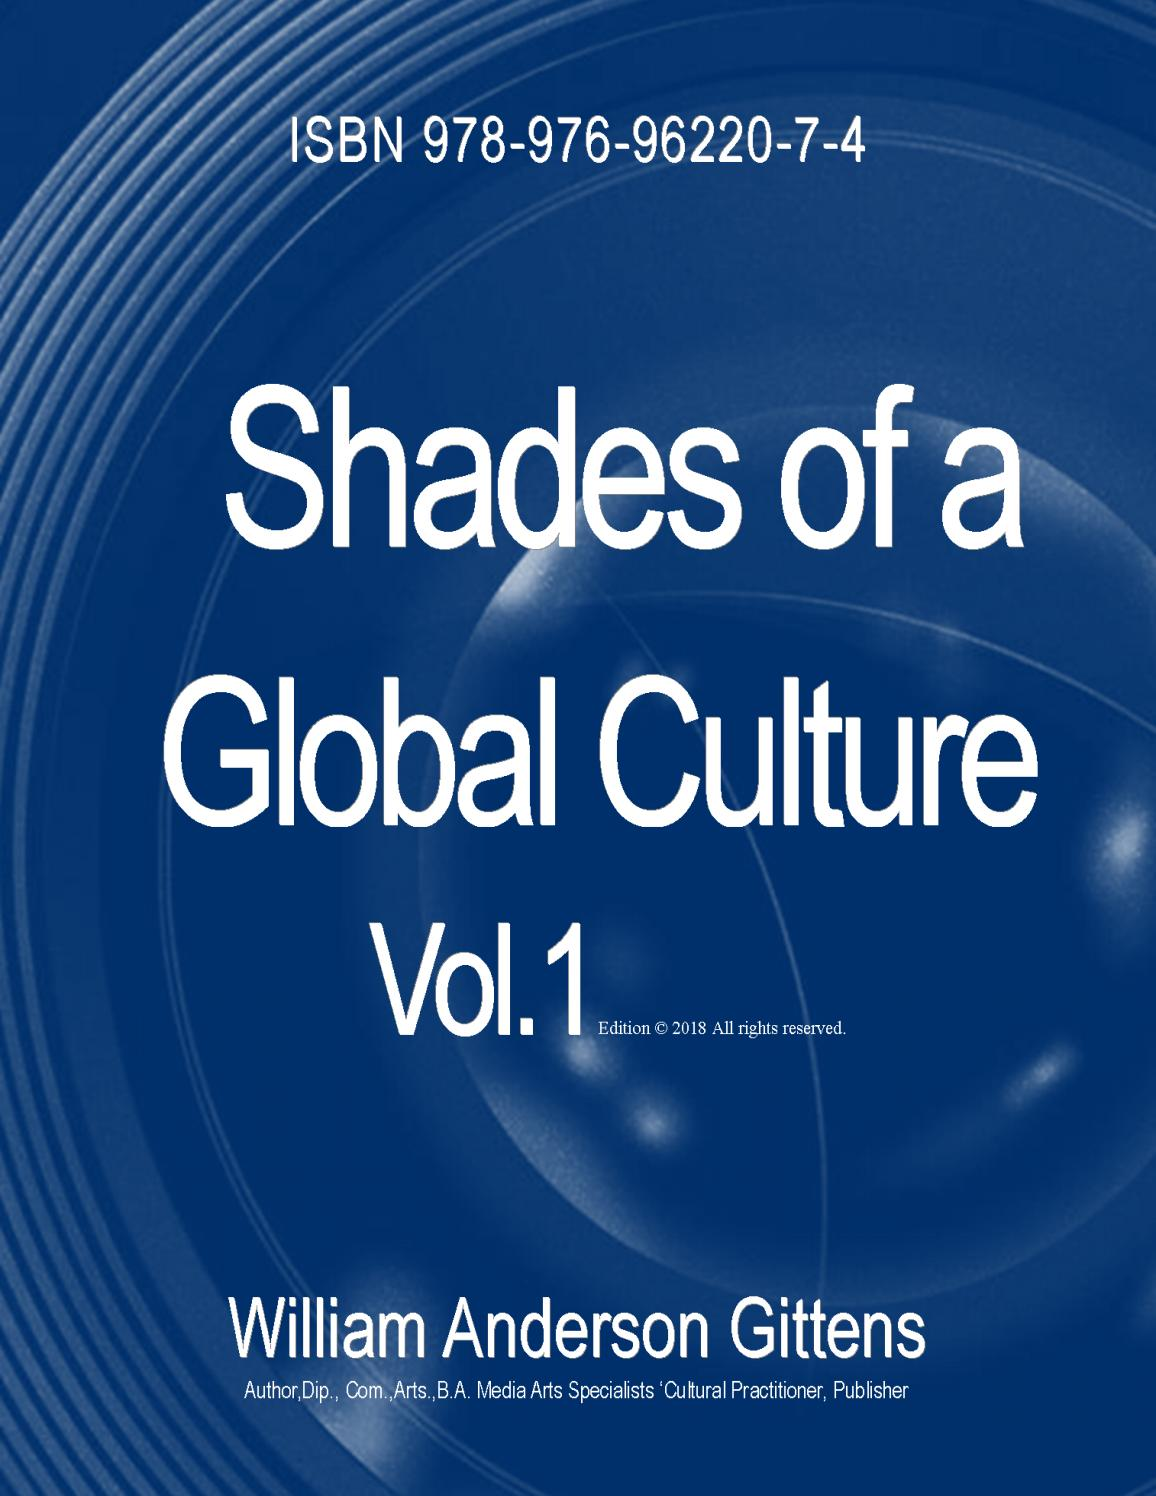 Shades of a Global Cultural Vol 1 by wgittens11 - issuu